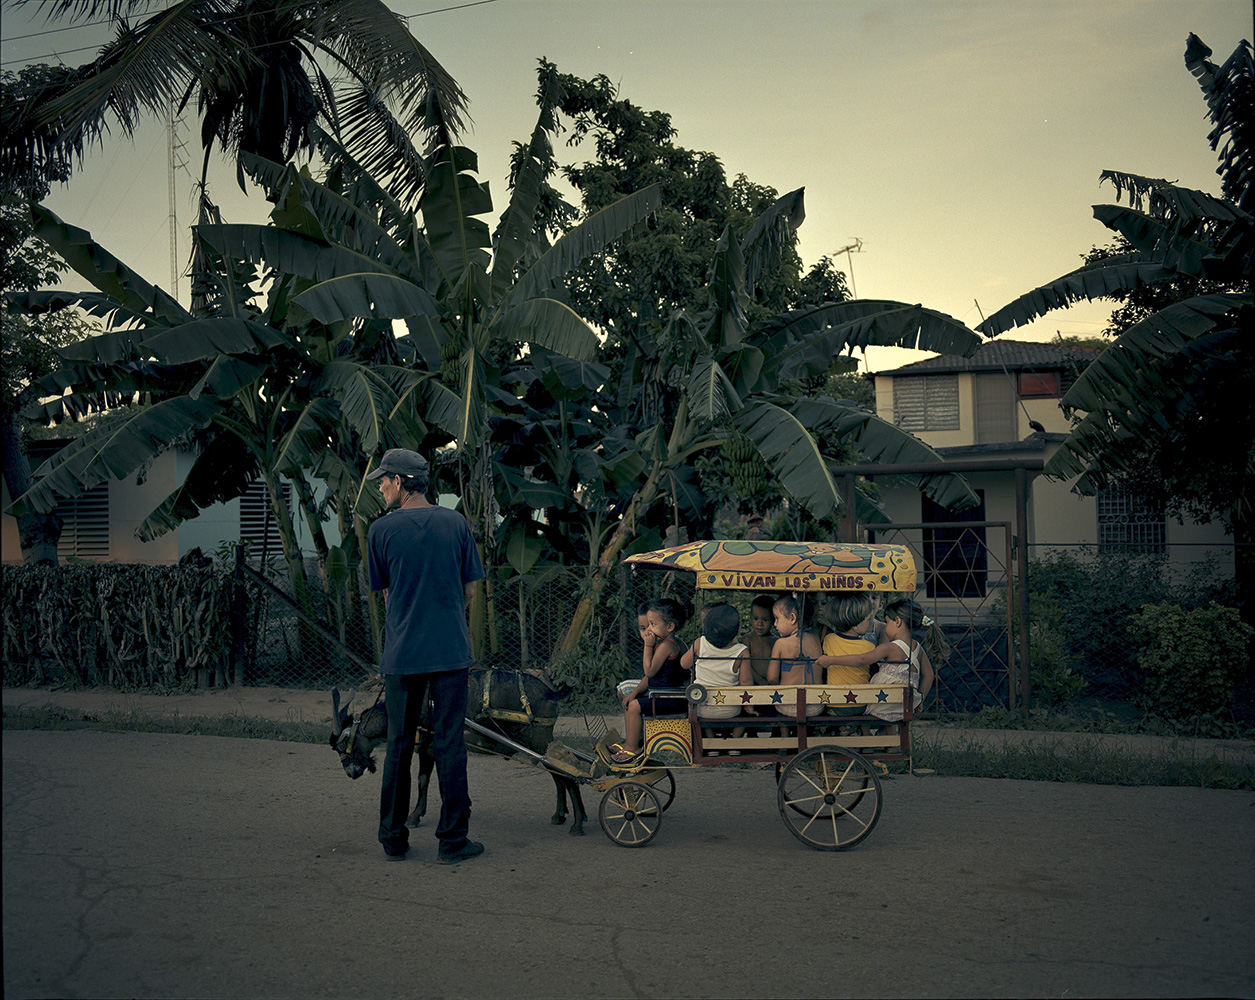 An old man drives his cart, which is pulled by a male goat and full of children in Manati town. A ride around the block costs 1 Cuban peso, or 5 cents of a dollar.